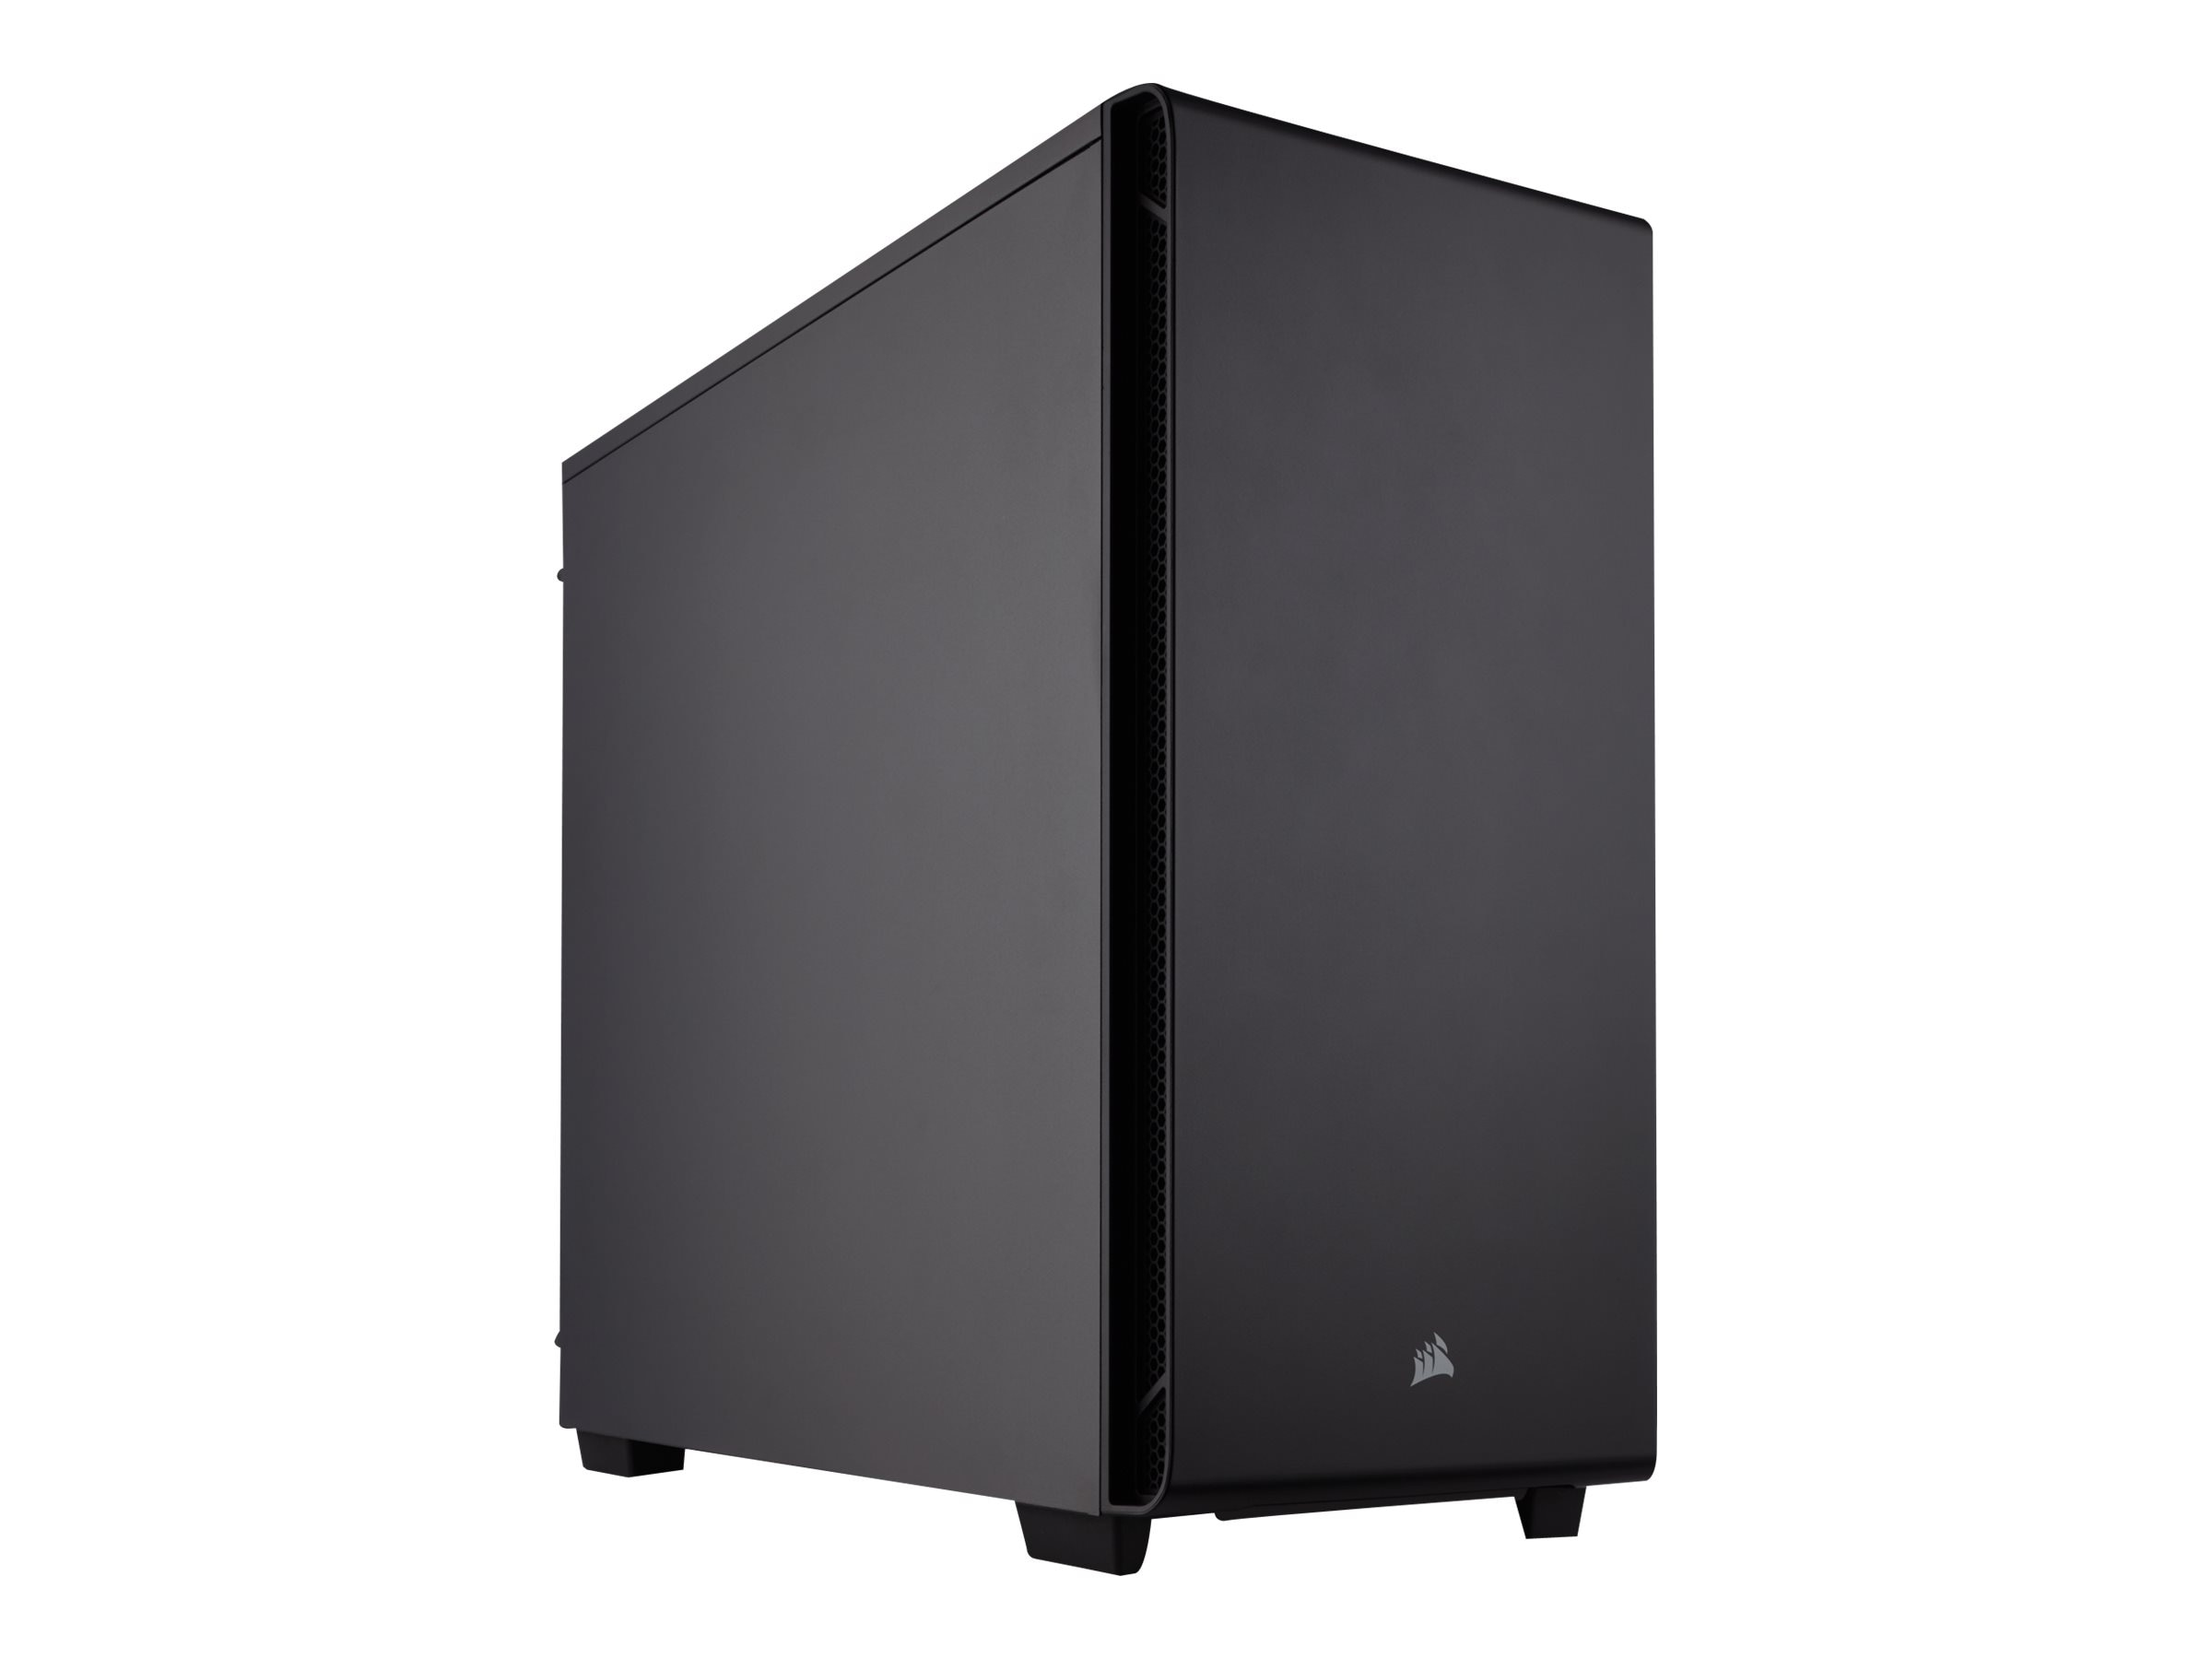 Corsair Chassis, Carbide 270R Mid Tower ATX, CC-9011106-WW